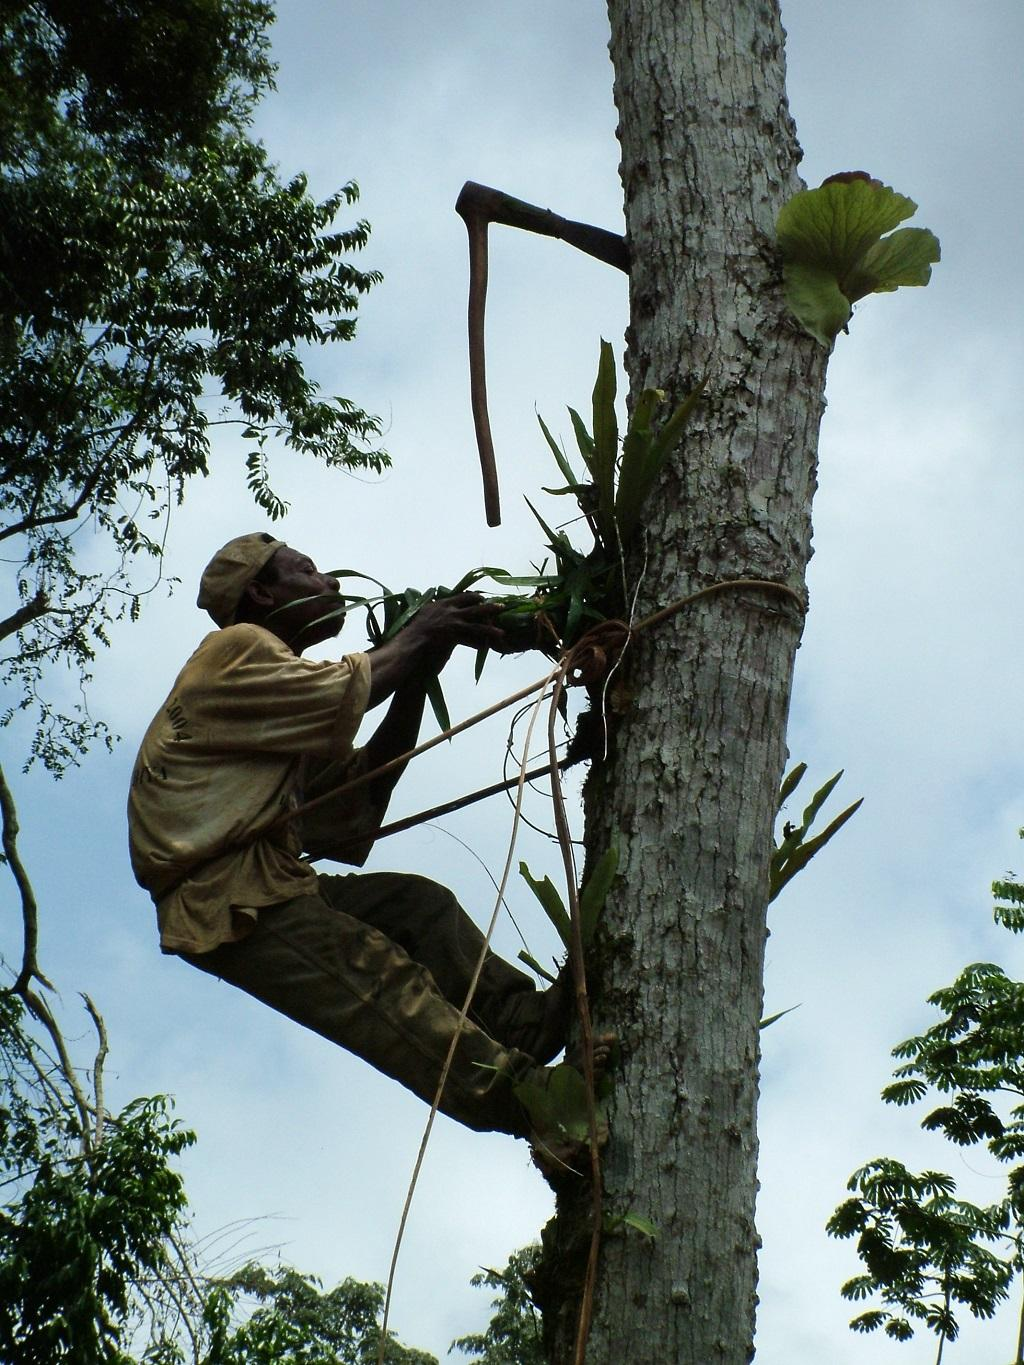 A Baka man collecting honey from a tree in Cameroon. Credit: Getty Images